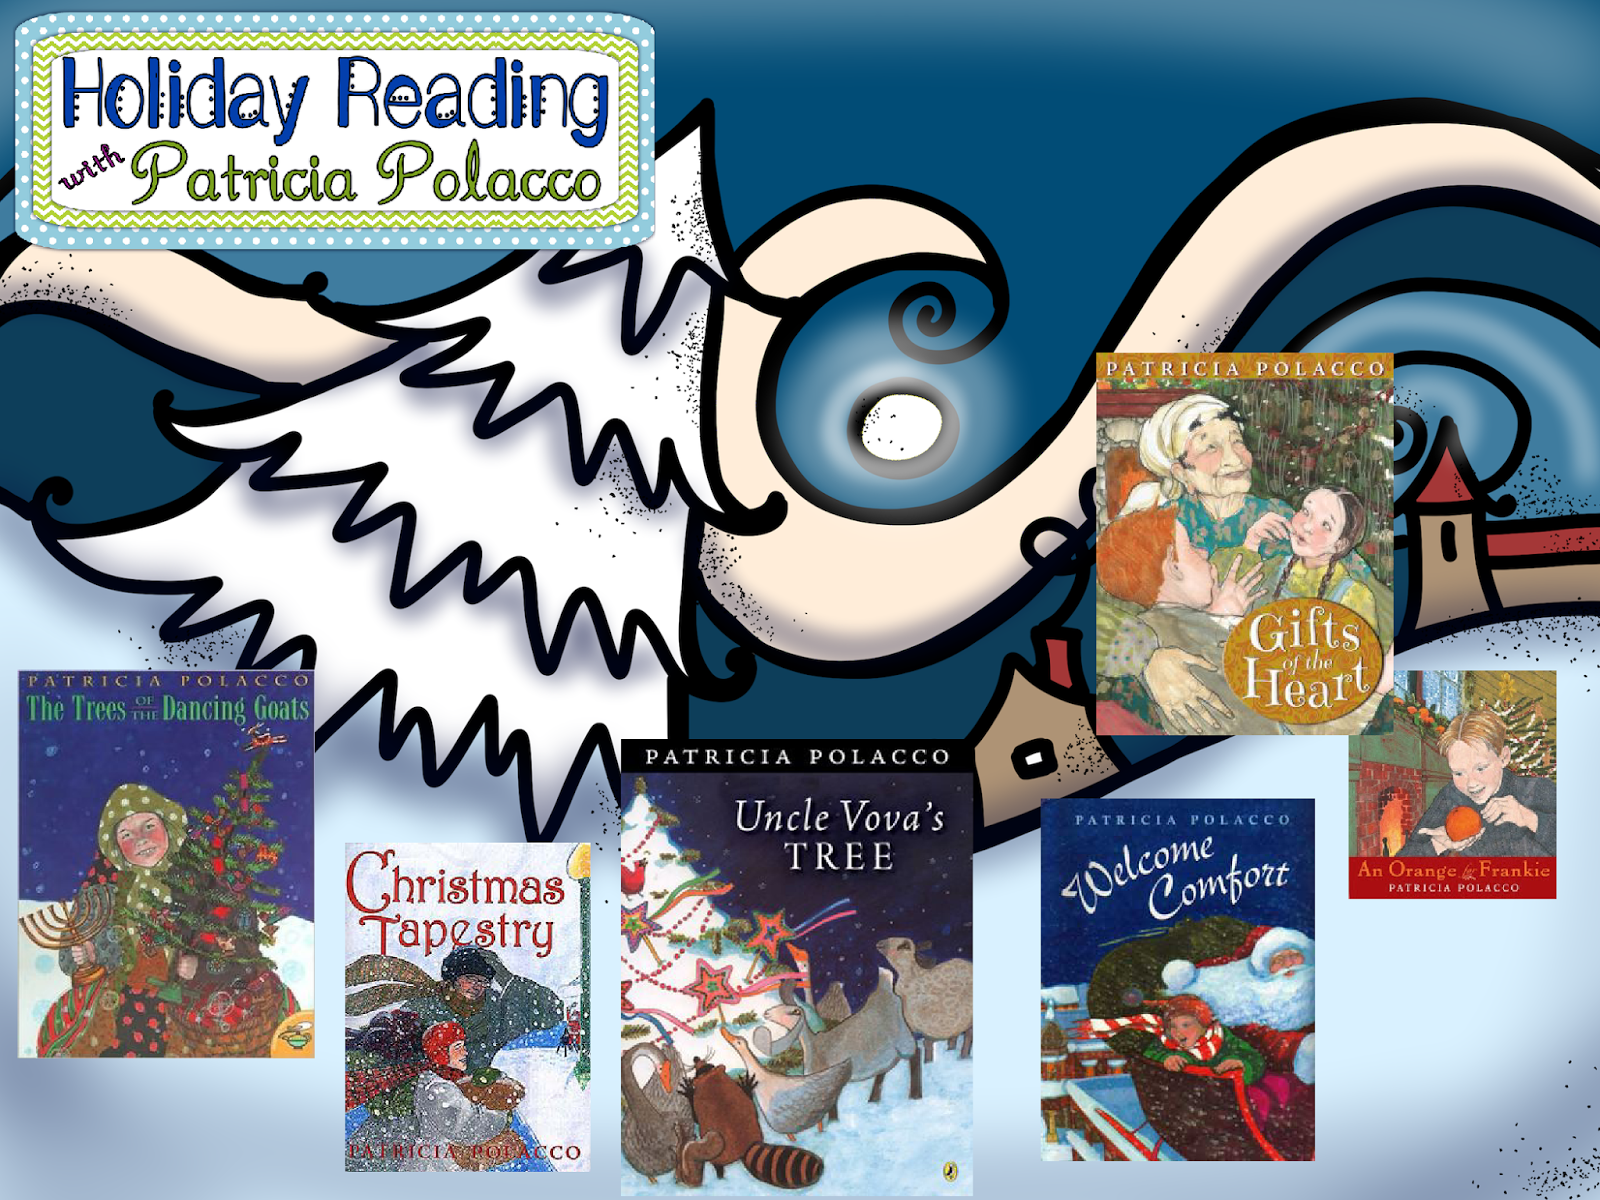 These are my favorite winter holiday books by Patricia Polacco.  You can download a free activity for the book An Orange for Frankie.